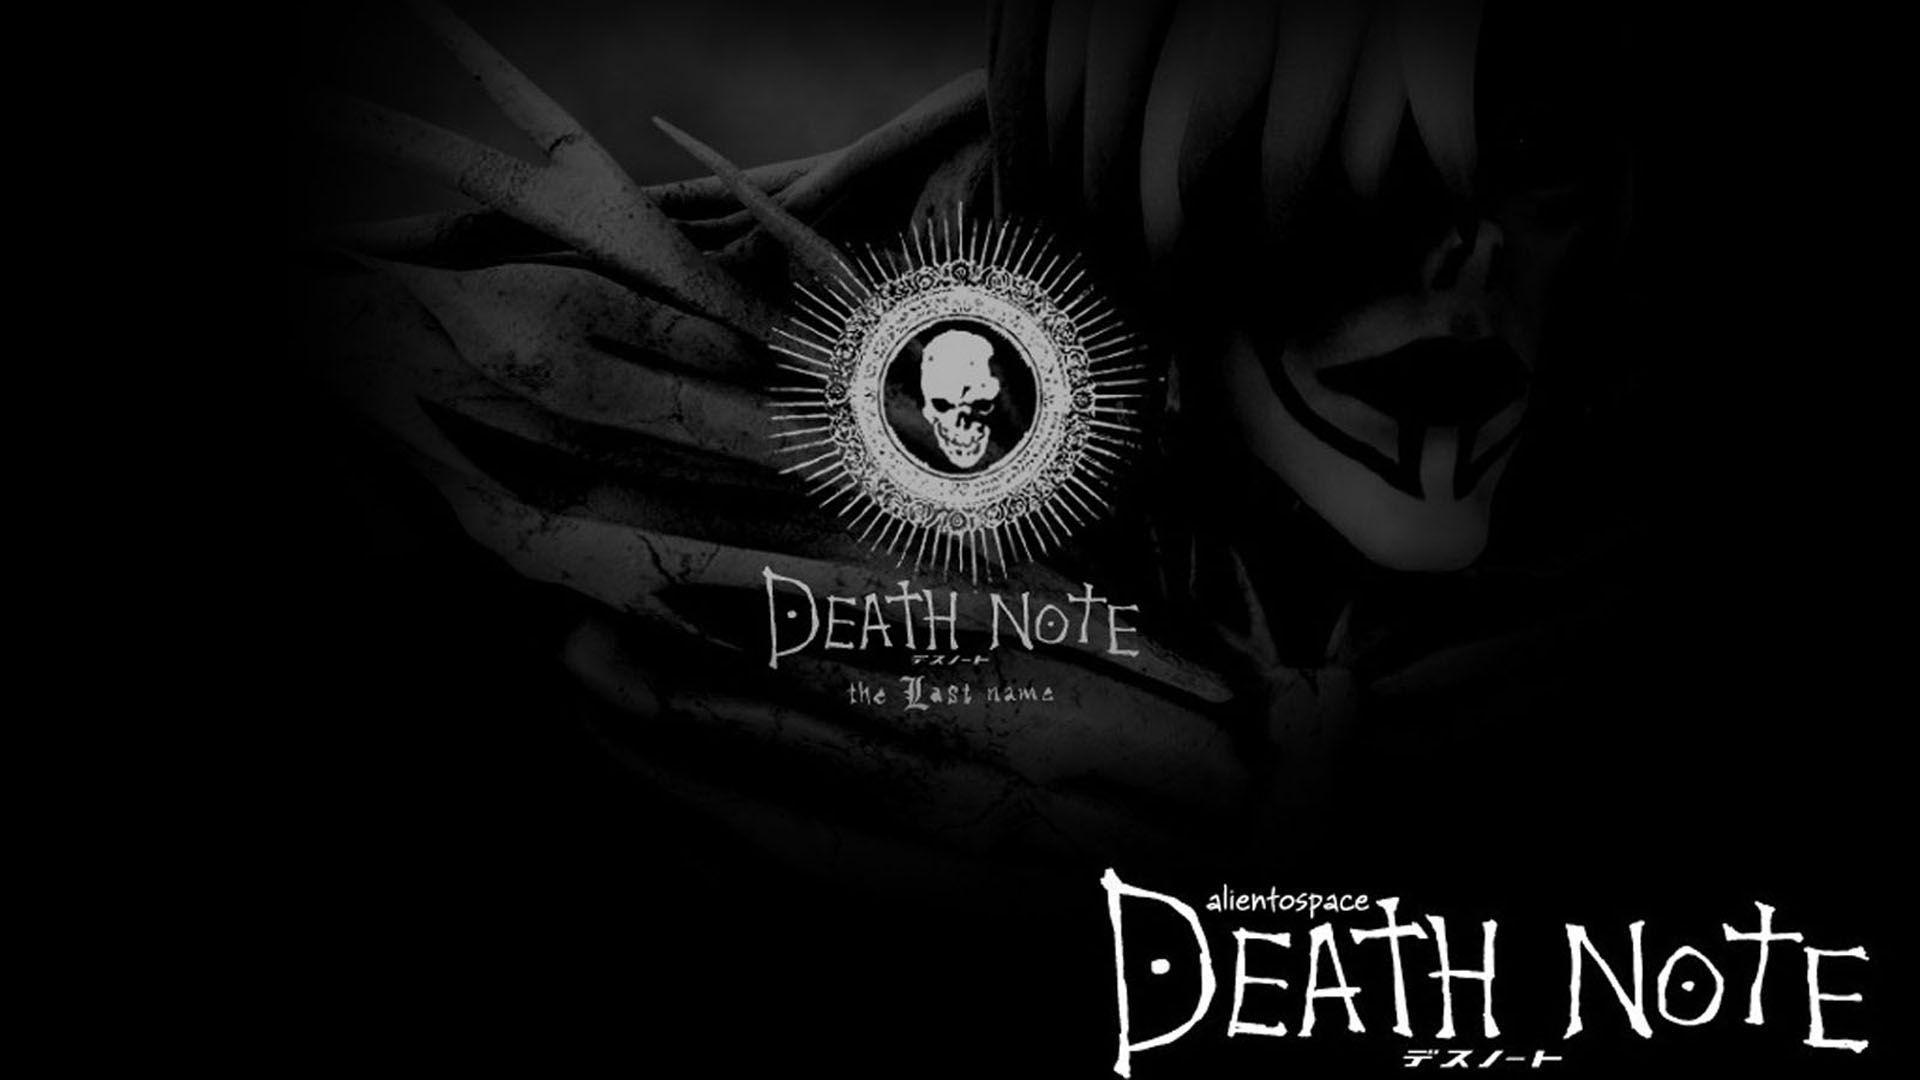 Death note wallpaper hd